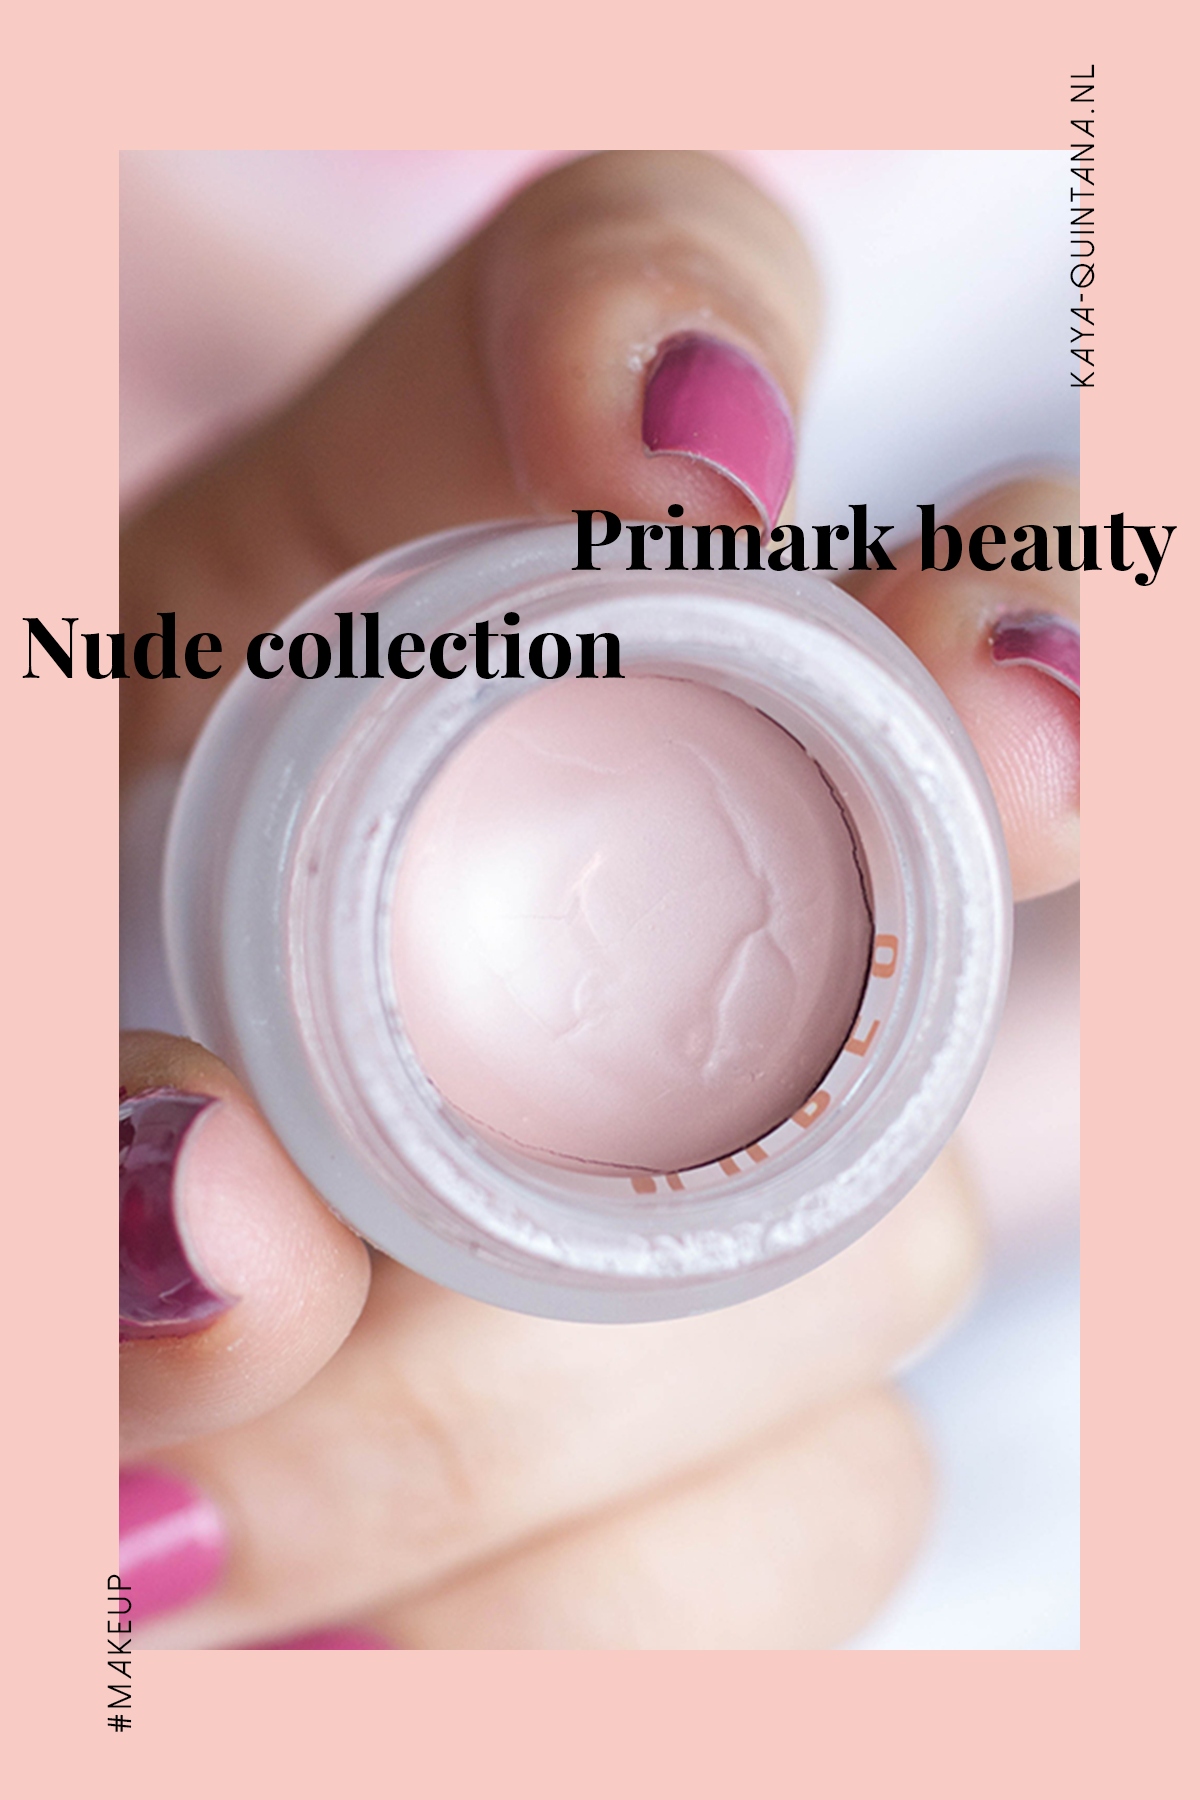 primark beauty nude collection